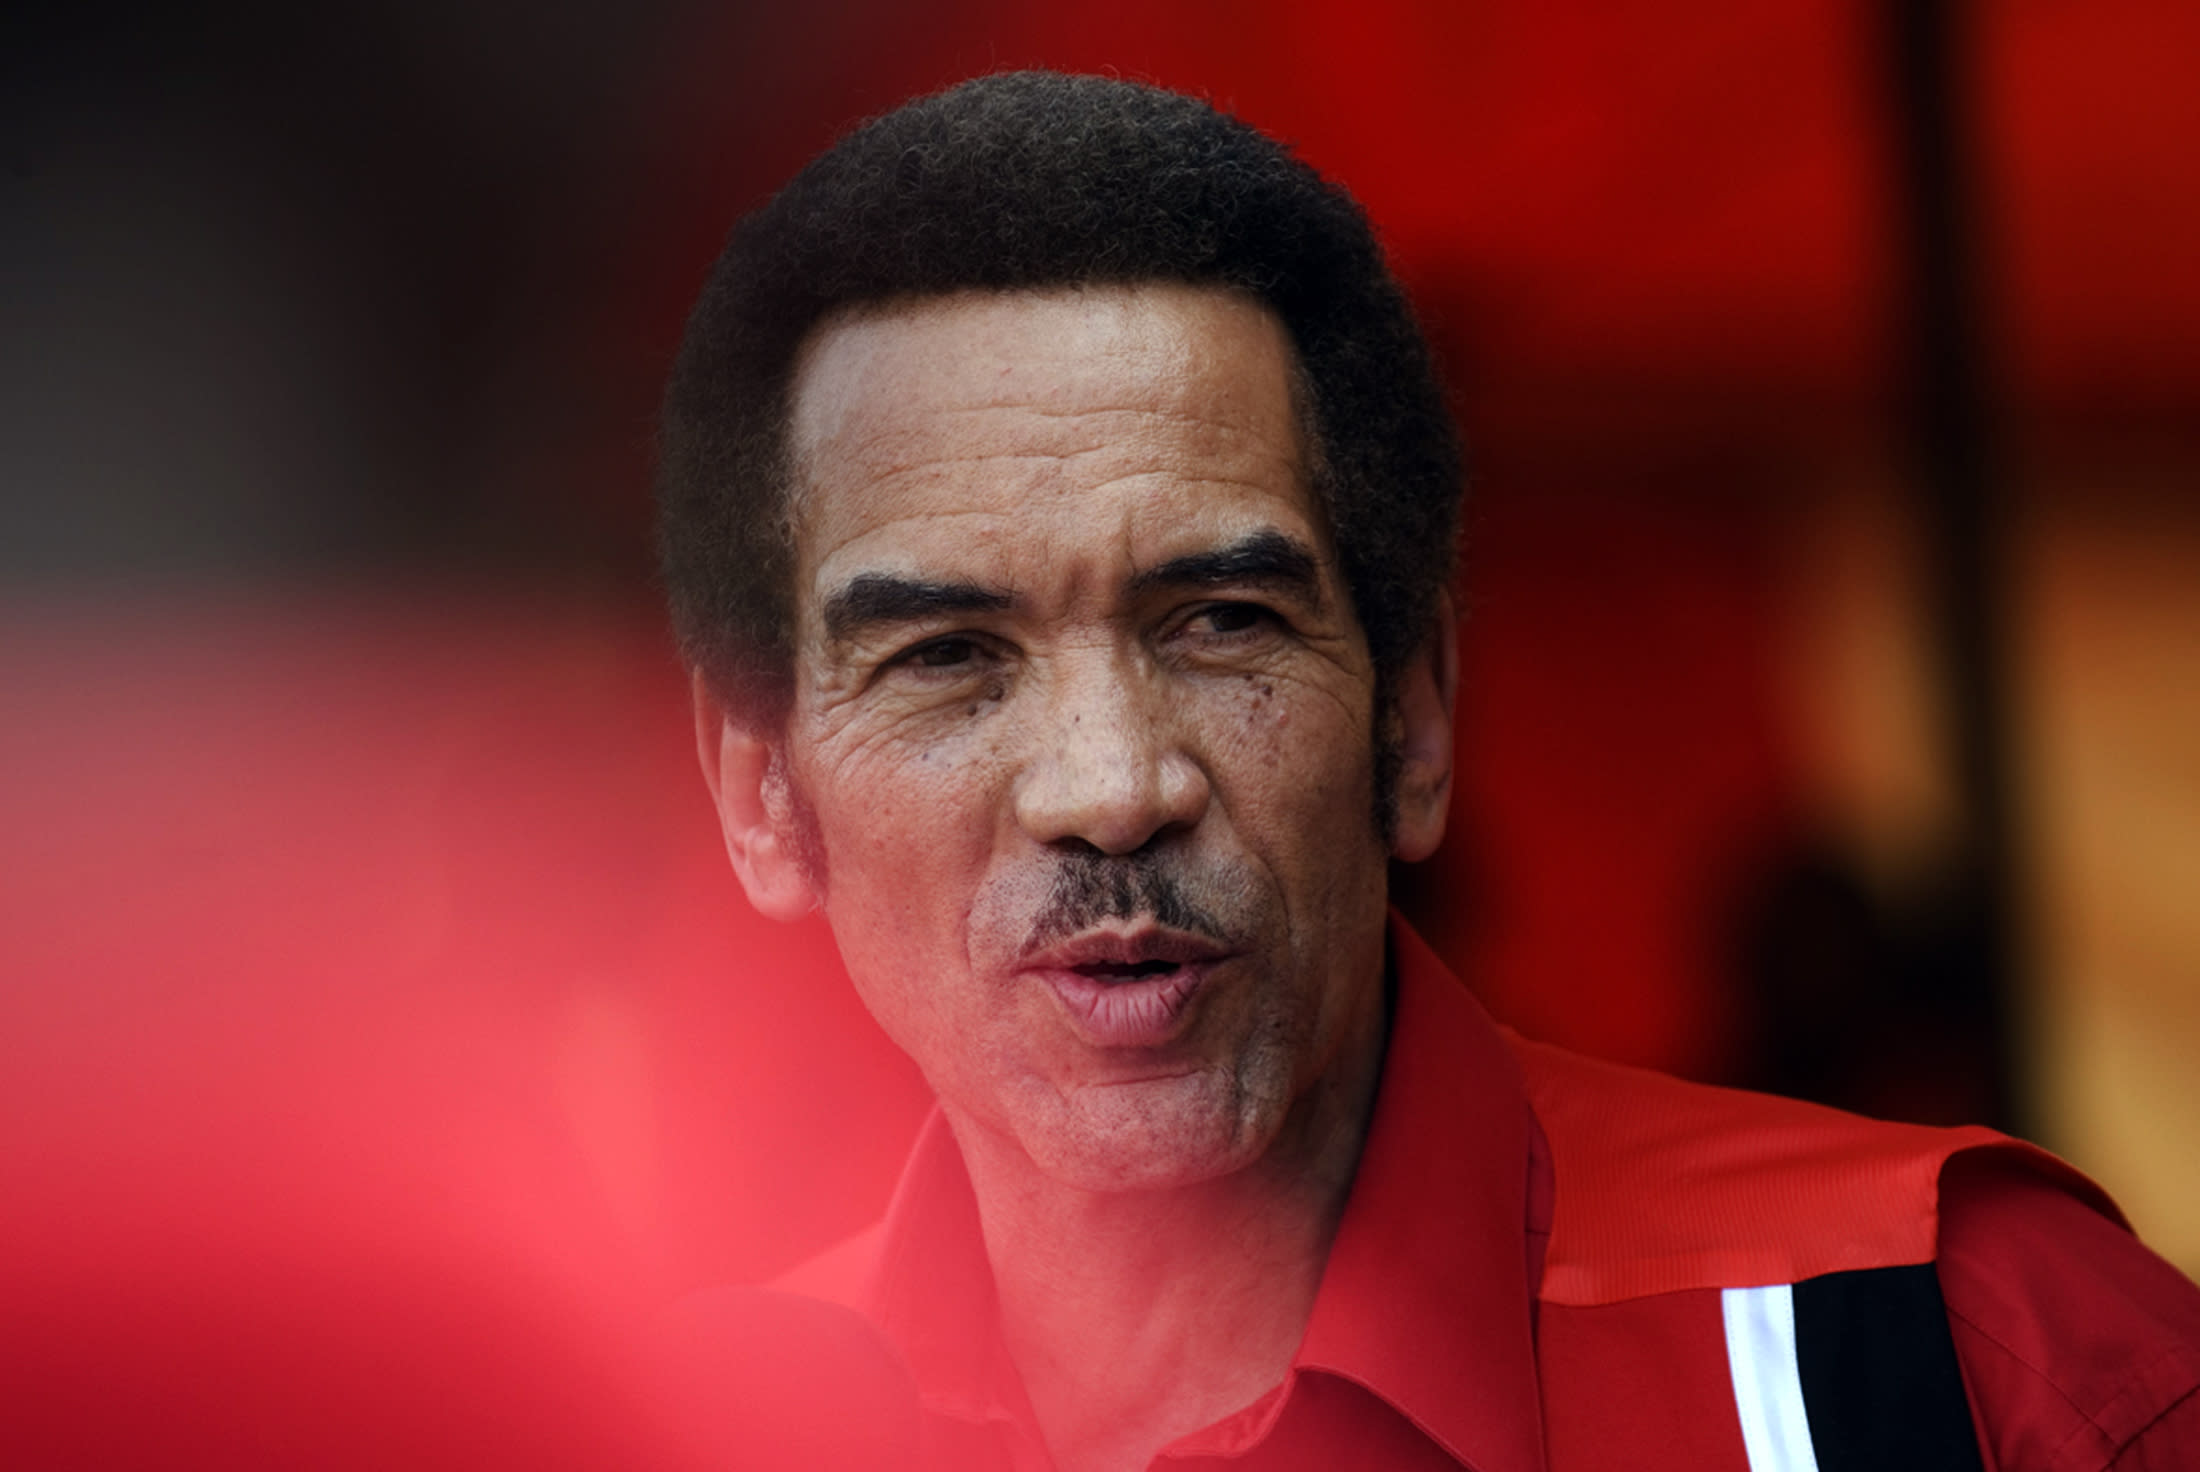 The President of Botswana and leader of the Botswana Democratic Party (BDP) Seretse Khama Ian Khama addresses a pre-election rally in Gaborone on October 10, 2009